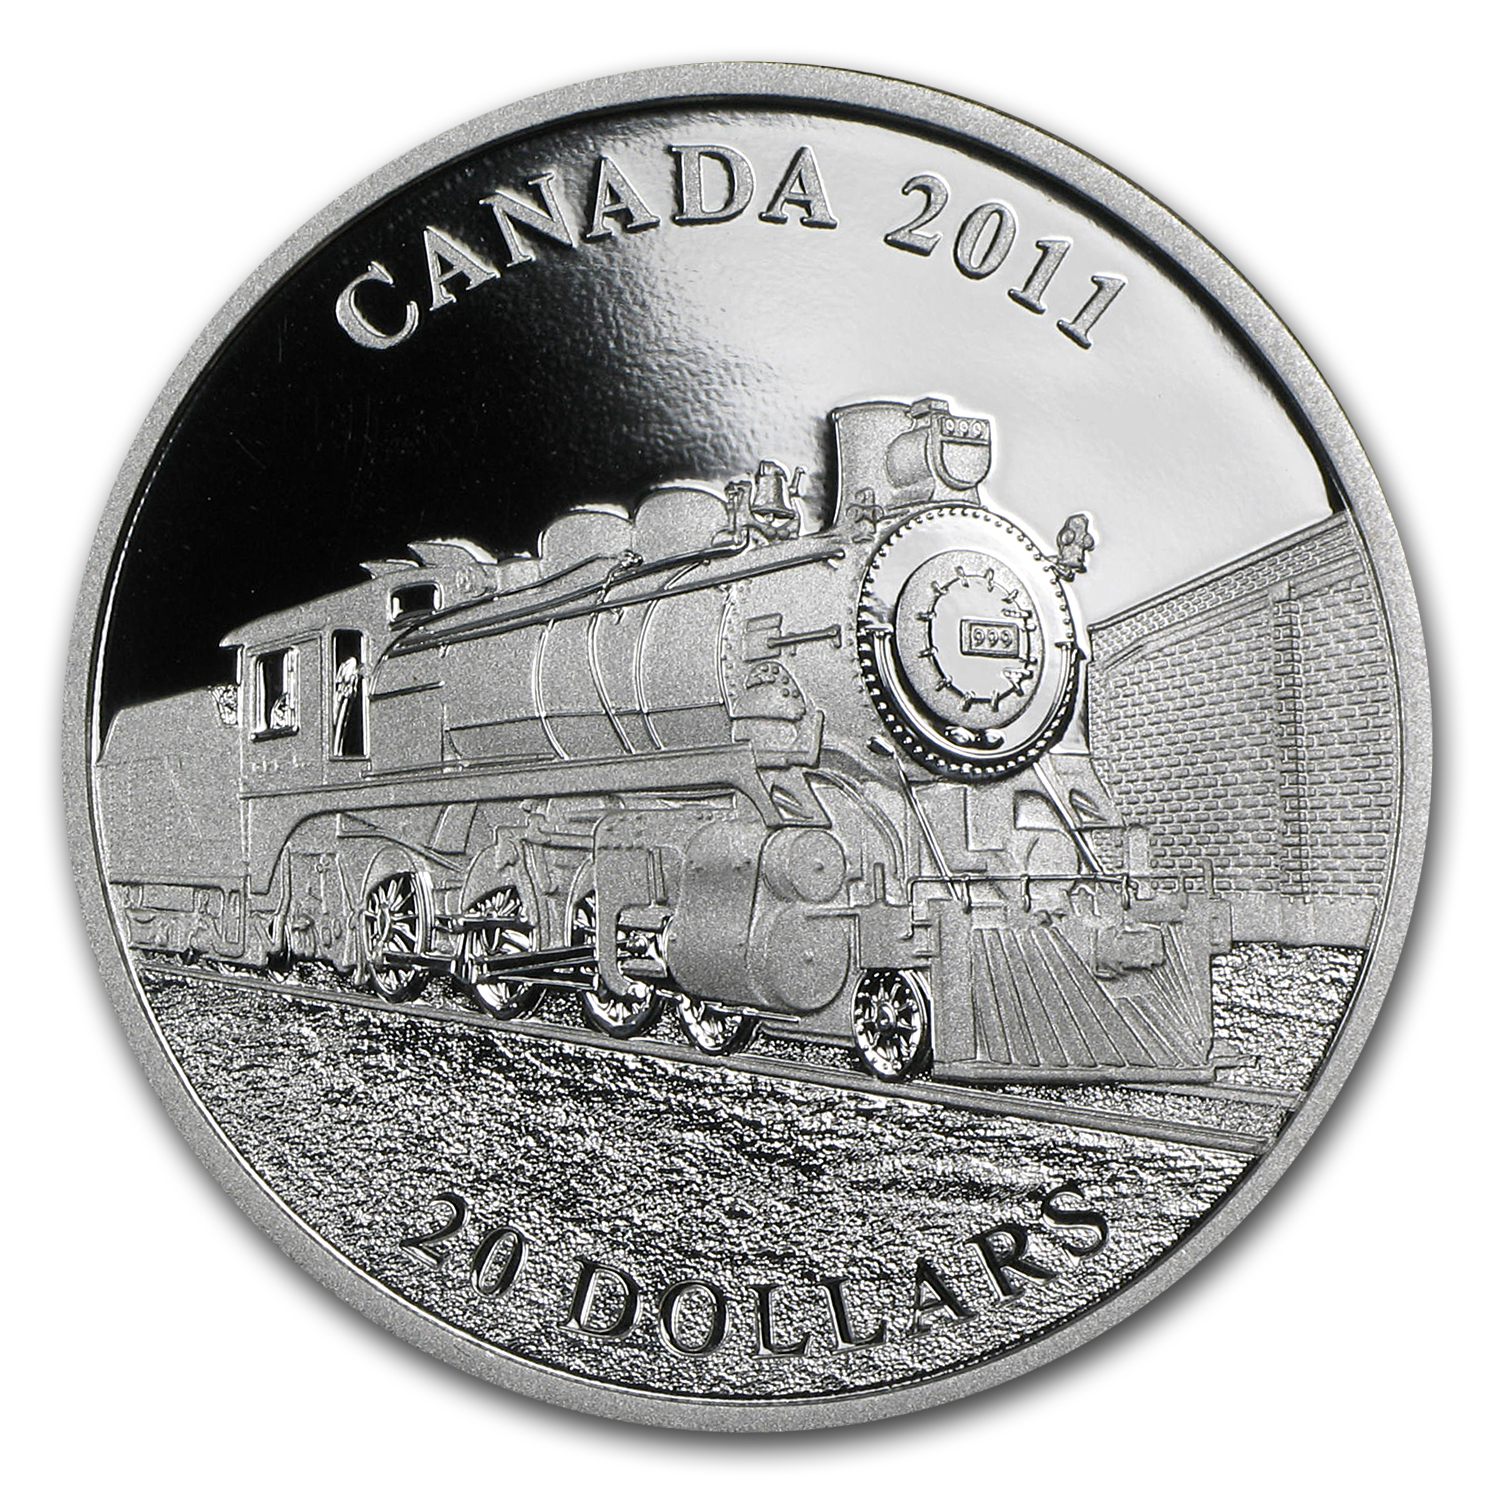 2011 1 oz Silver Canadian $20 Great Locomotives D-10 (w/Box)